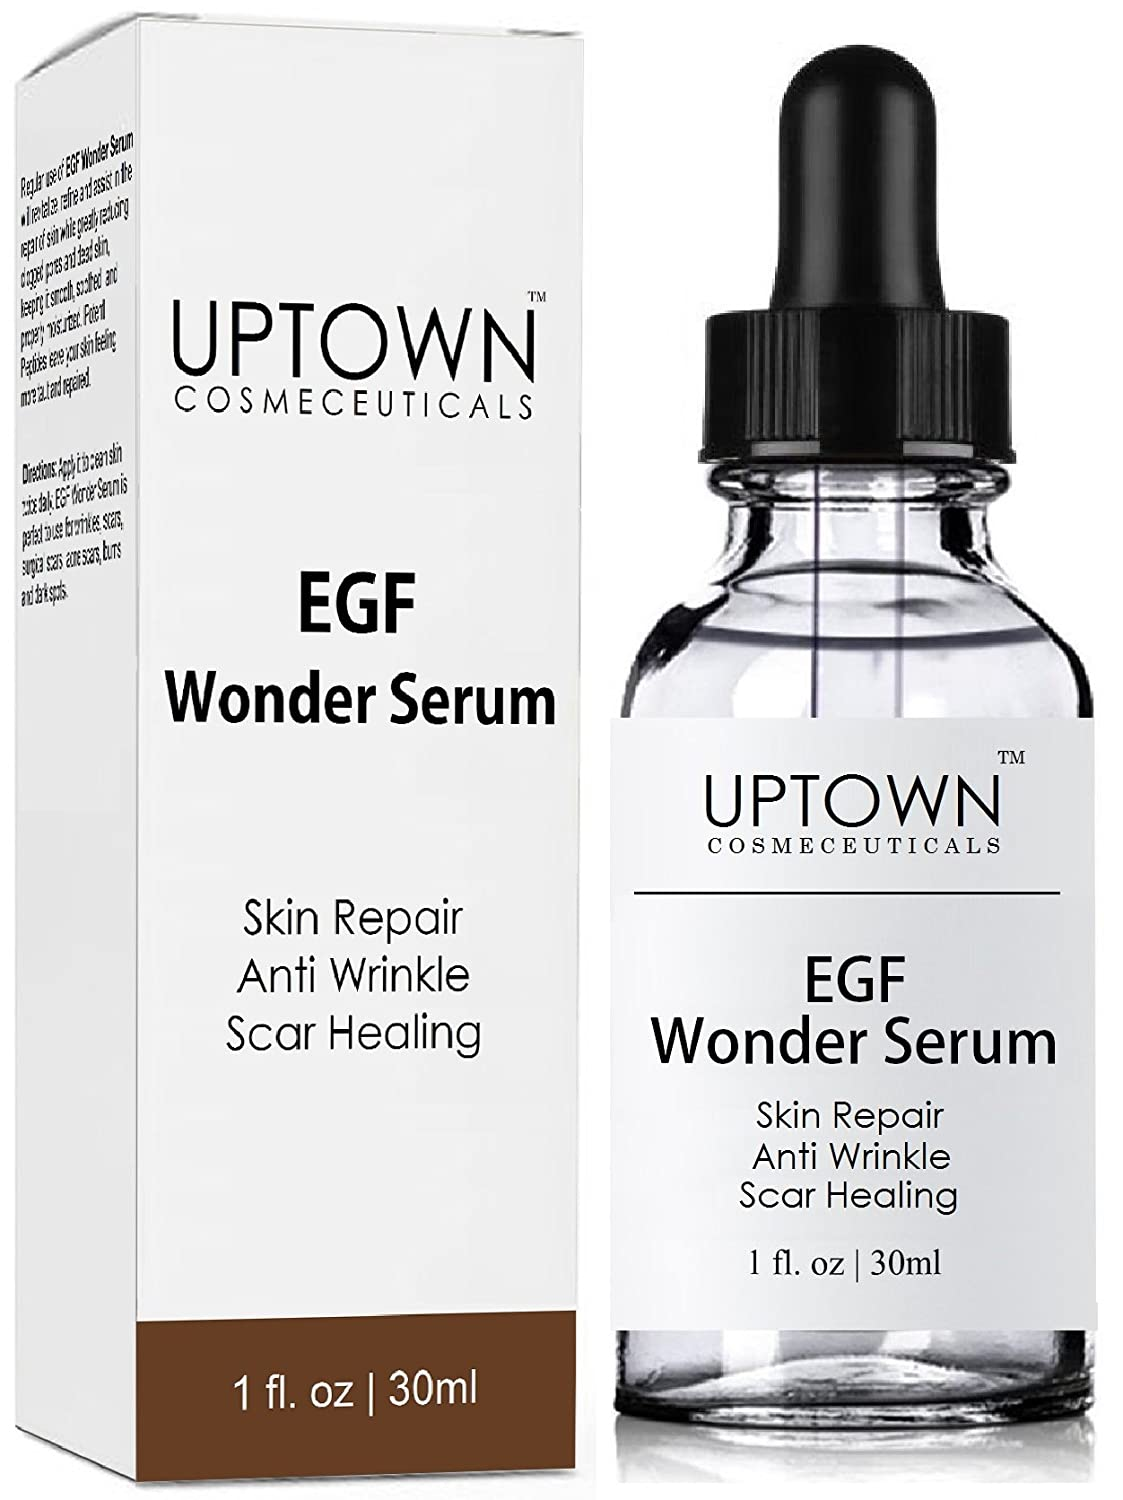 Anti Wrinkle & Acne Scar Removal EGF Wonder Serum From Uptown Cosmeceuticals, Best Skin Repair and Healing Peptide Helps Diminish the Appearance of Scars, Wrinkles, Burns, and Dark Spots Visibly, 30mL